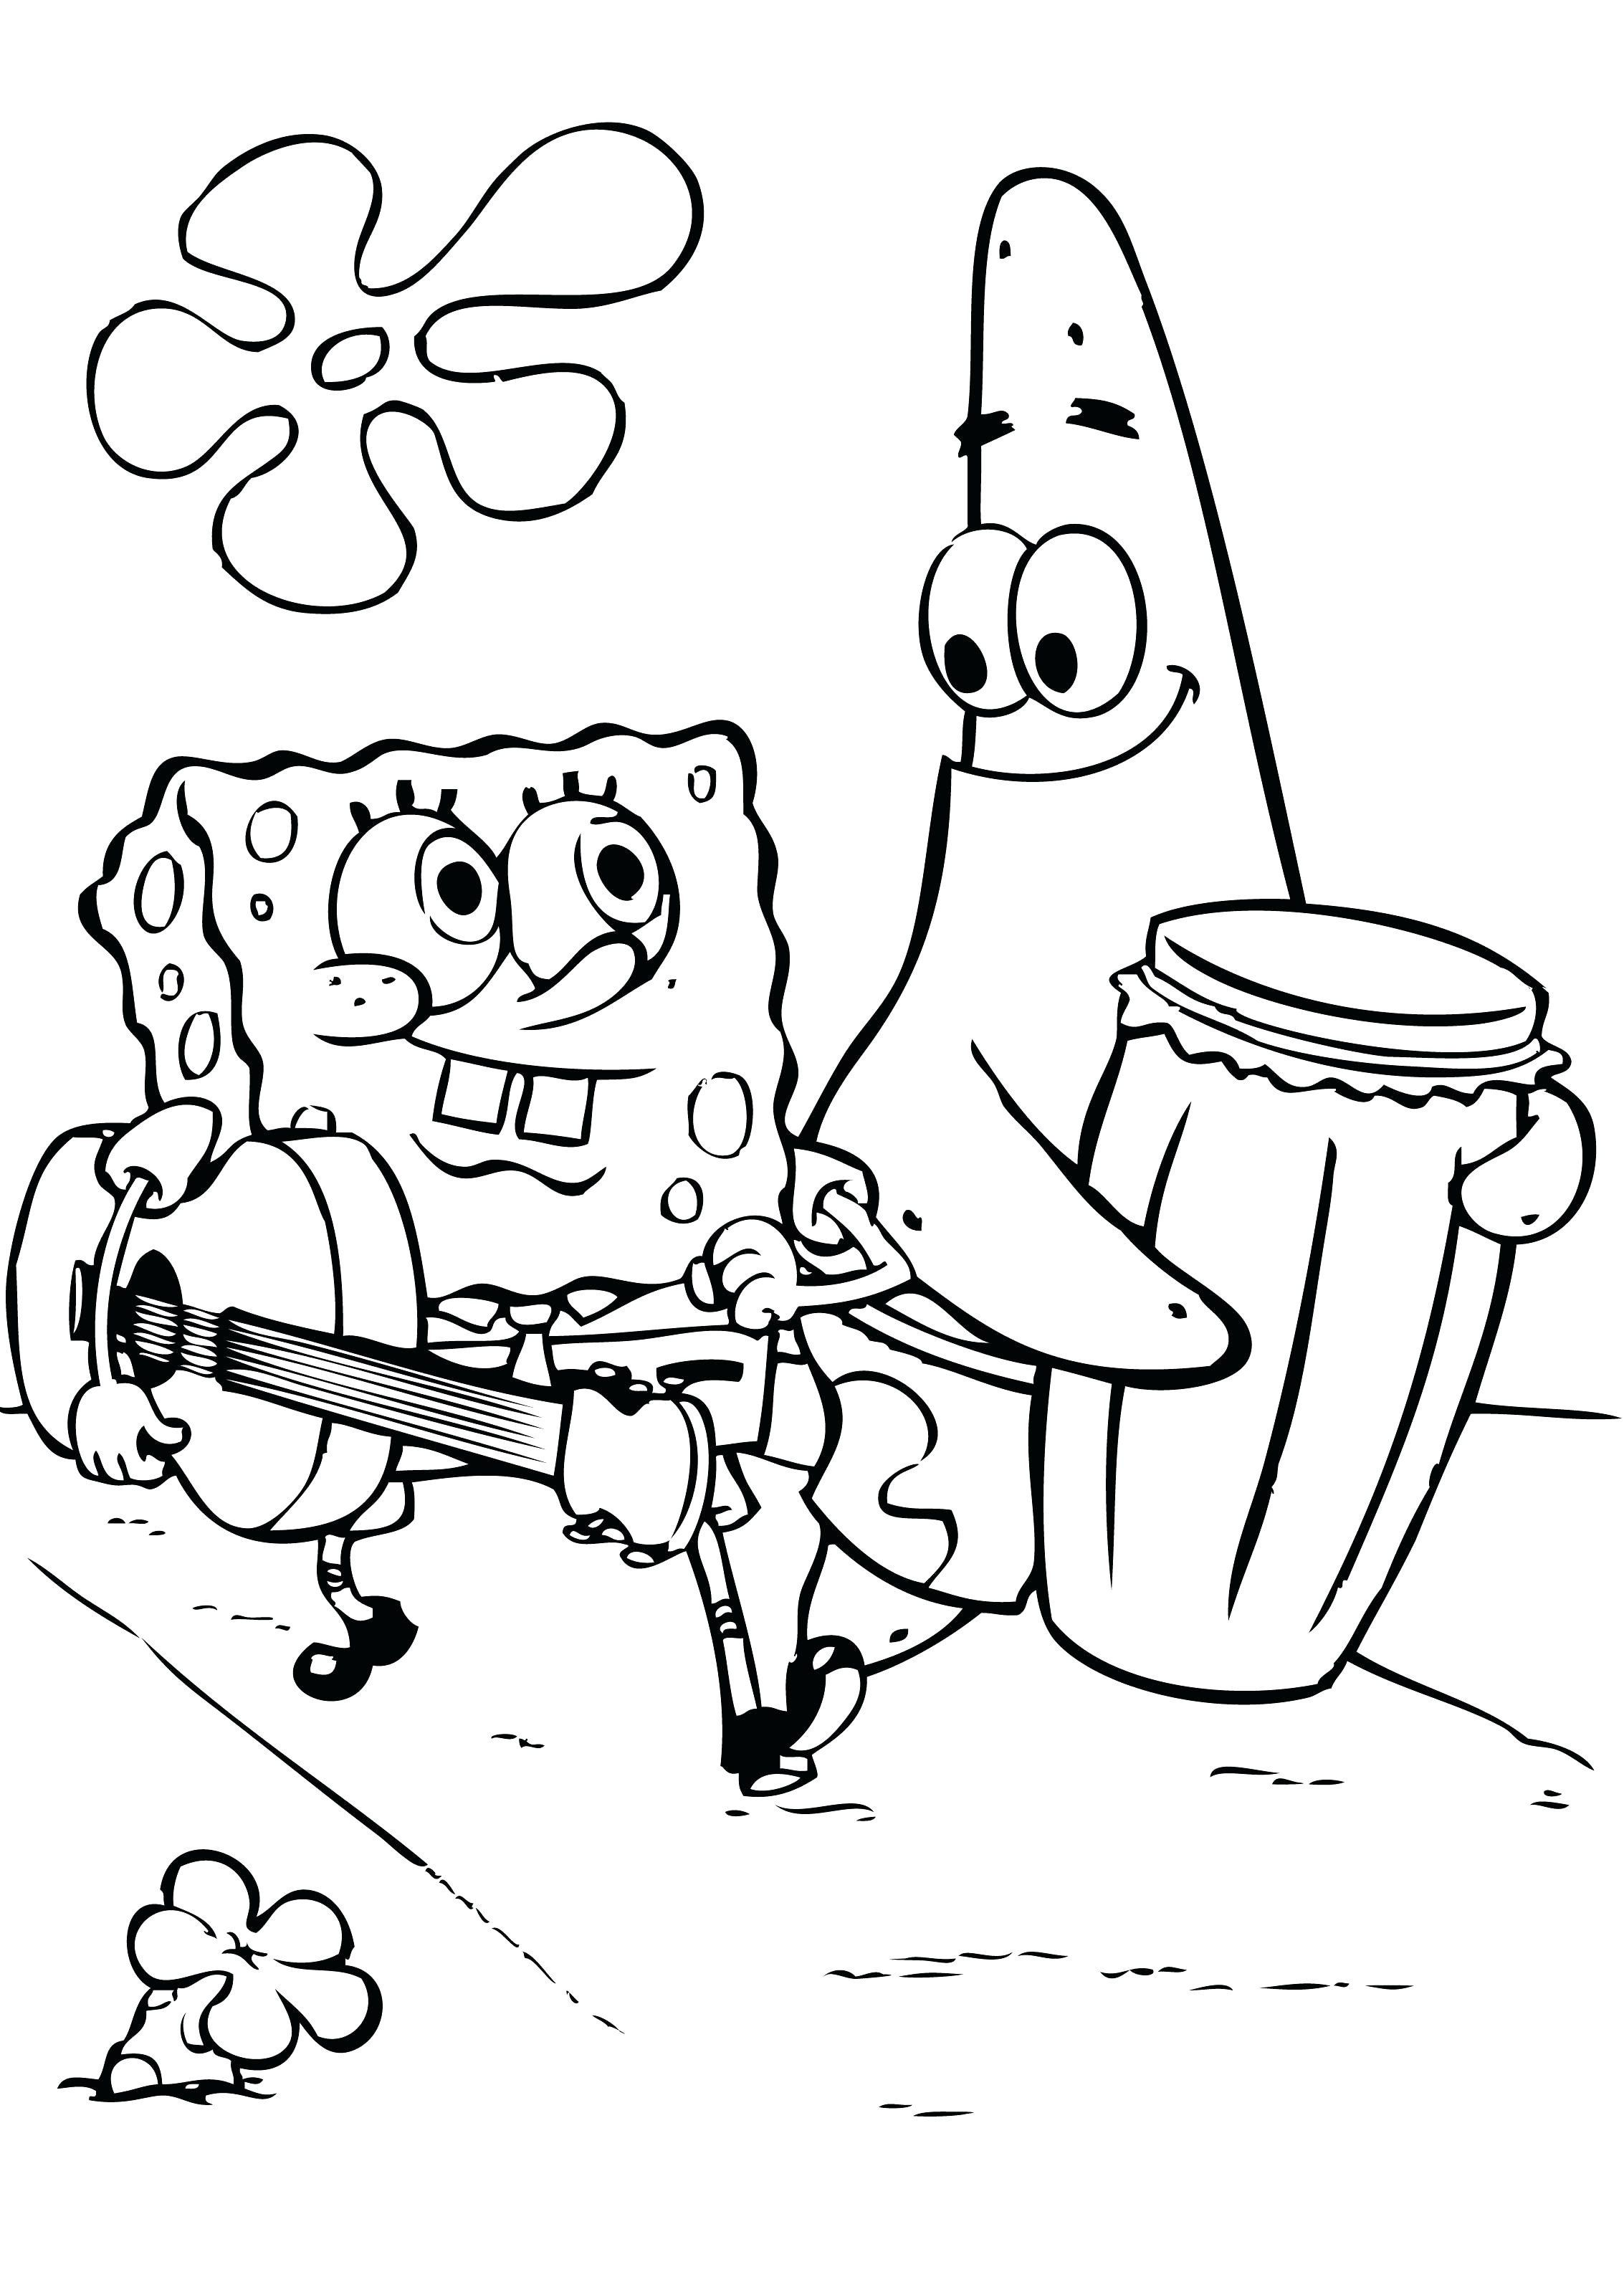 68 Beautiful Images Of Nickelodeon Coloring Pages Check More At Https Www Mercerepc Com Nicke Disney Coloring Pages Spongebob Coloring Cartoon Coloring Pages